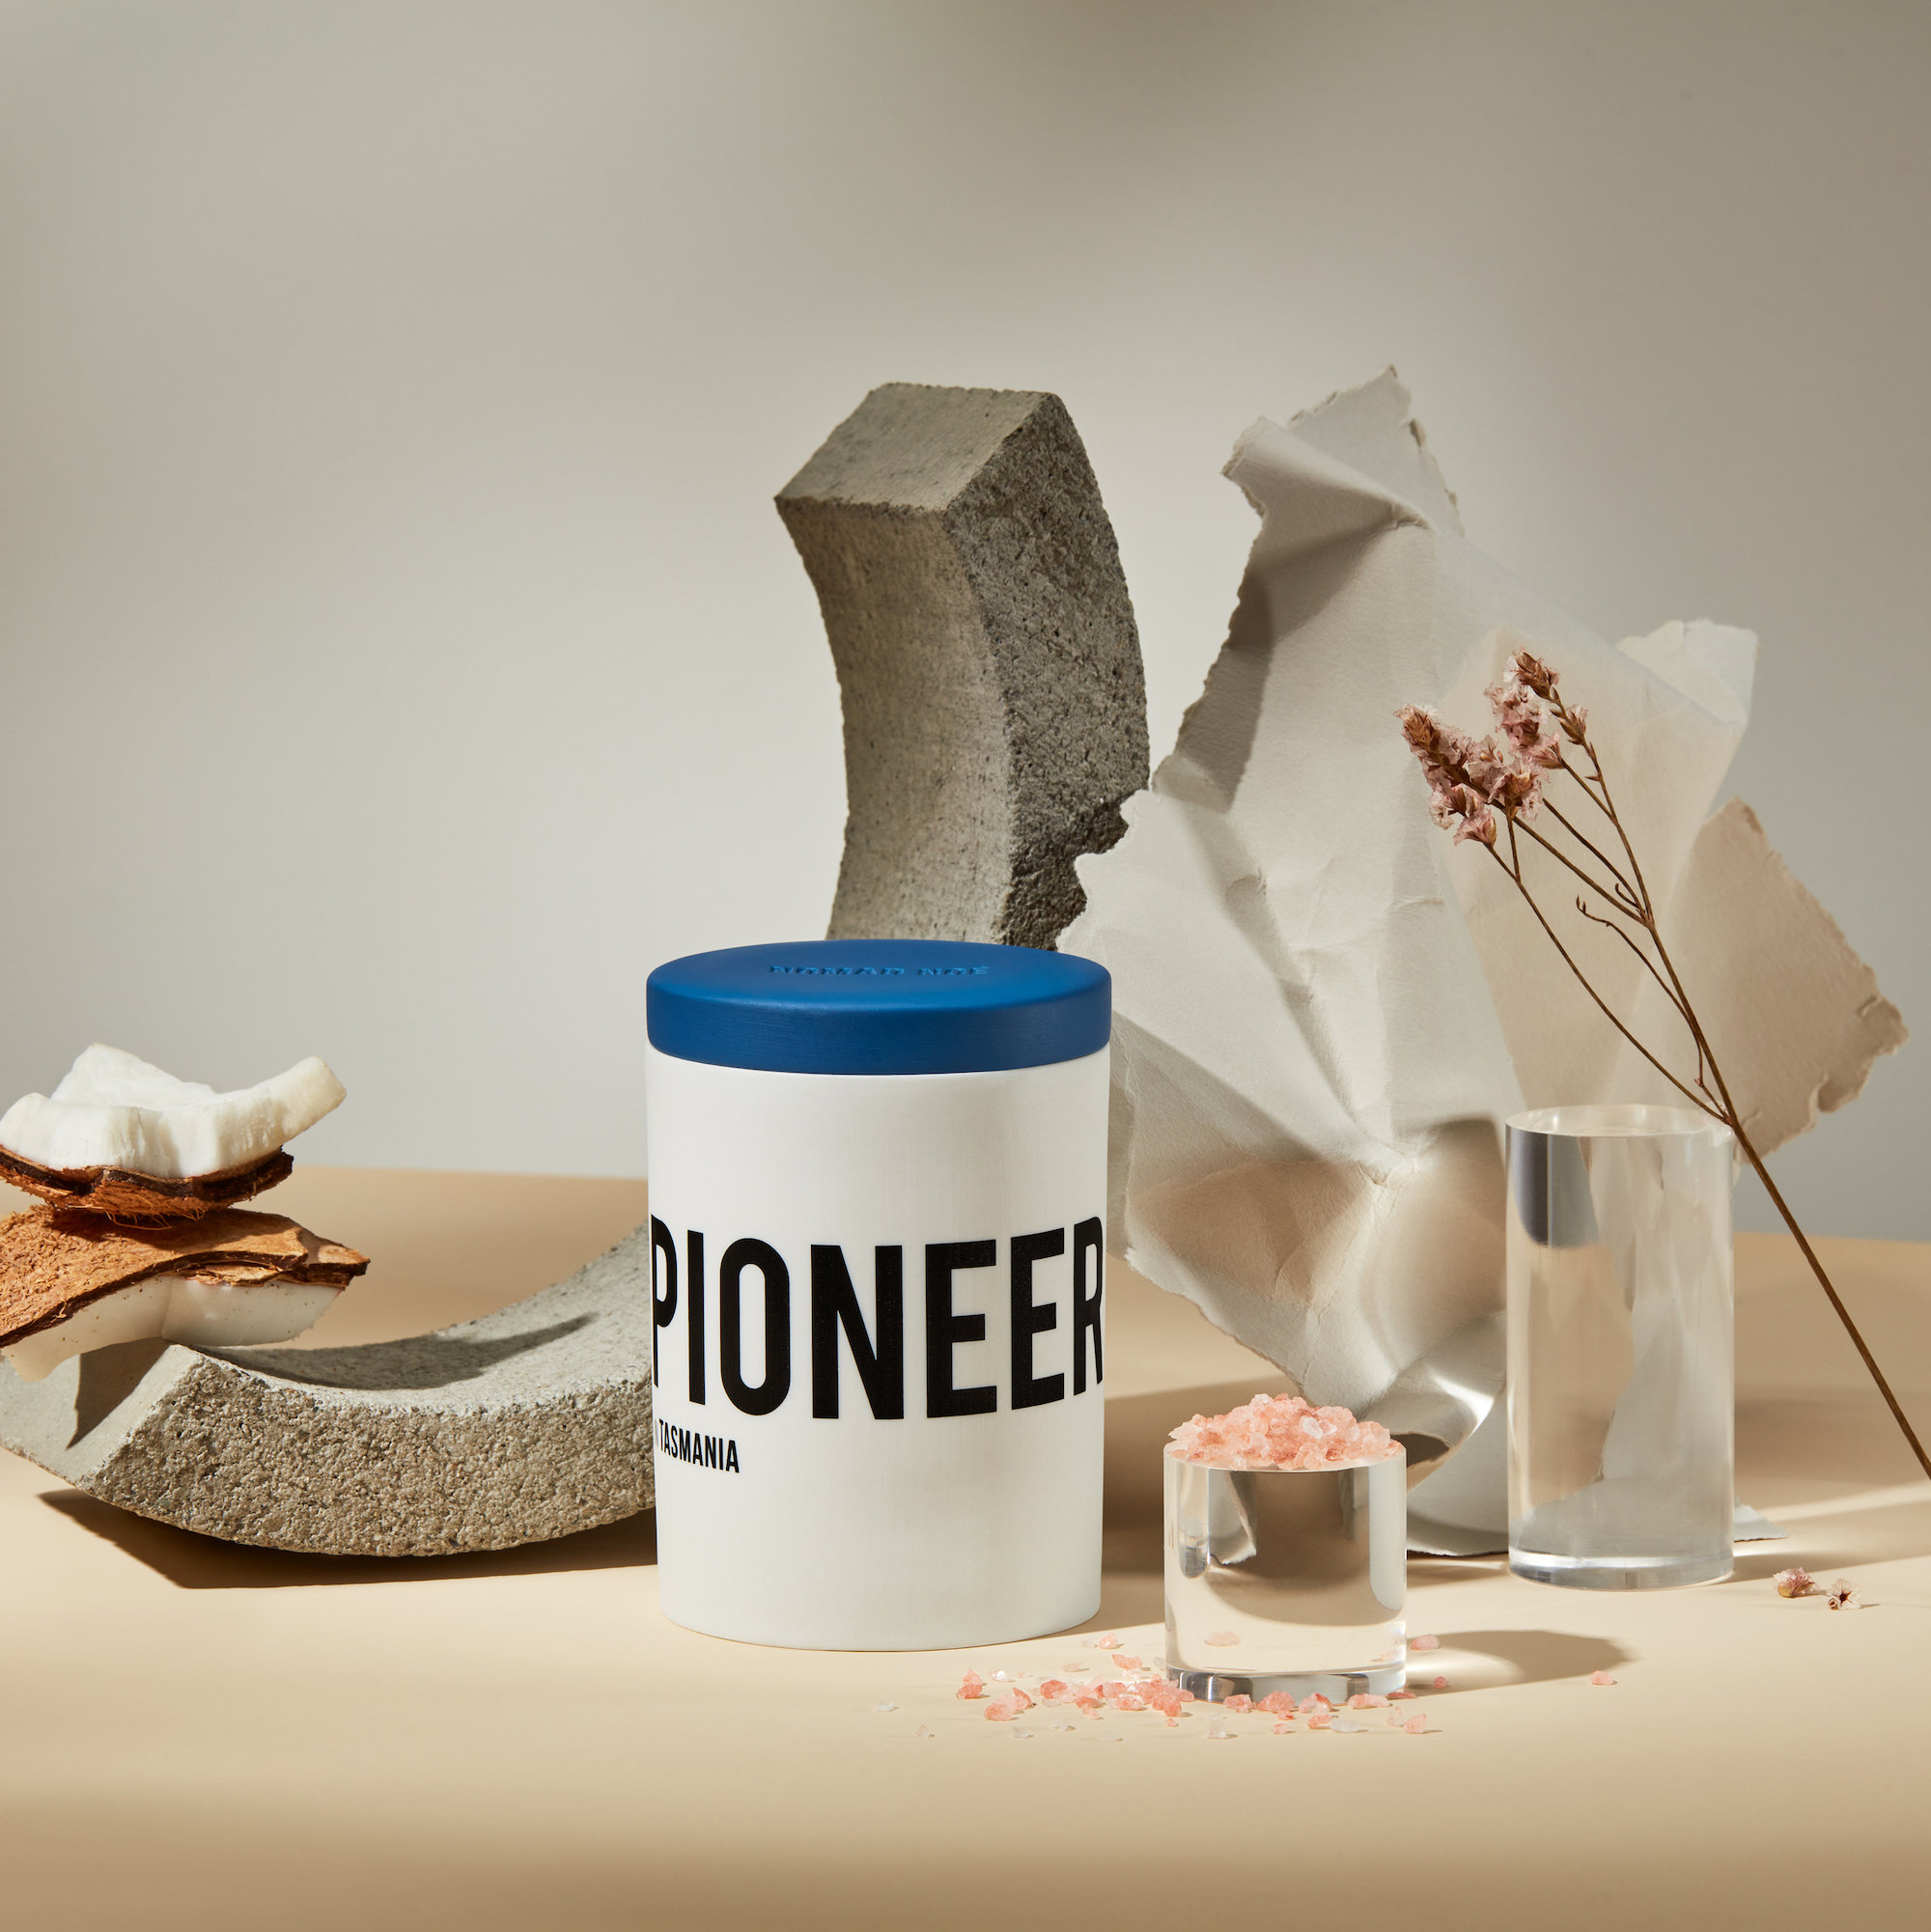 Alternate product image for Pioneer In Tasmania - Sea Salt & Coconut Candle shown with the description.